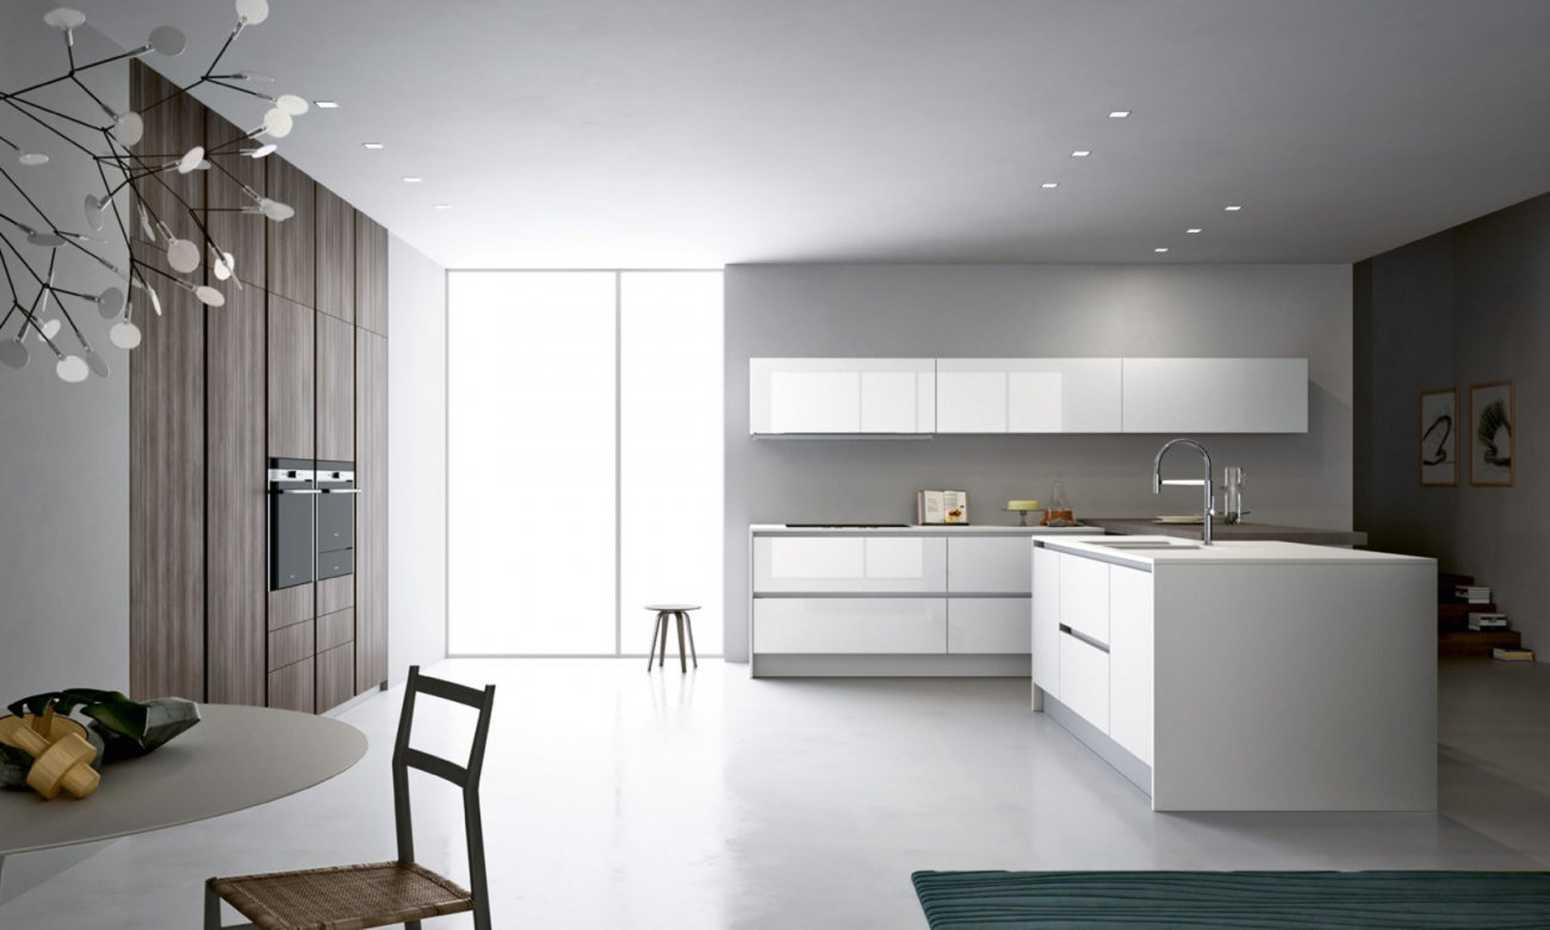 Easy by Doimo Cucine product image 1